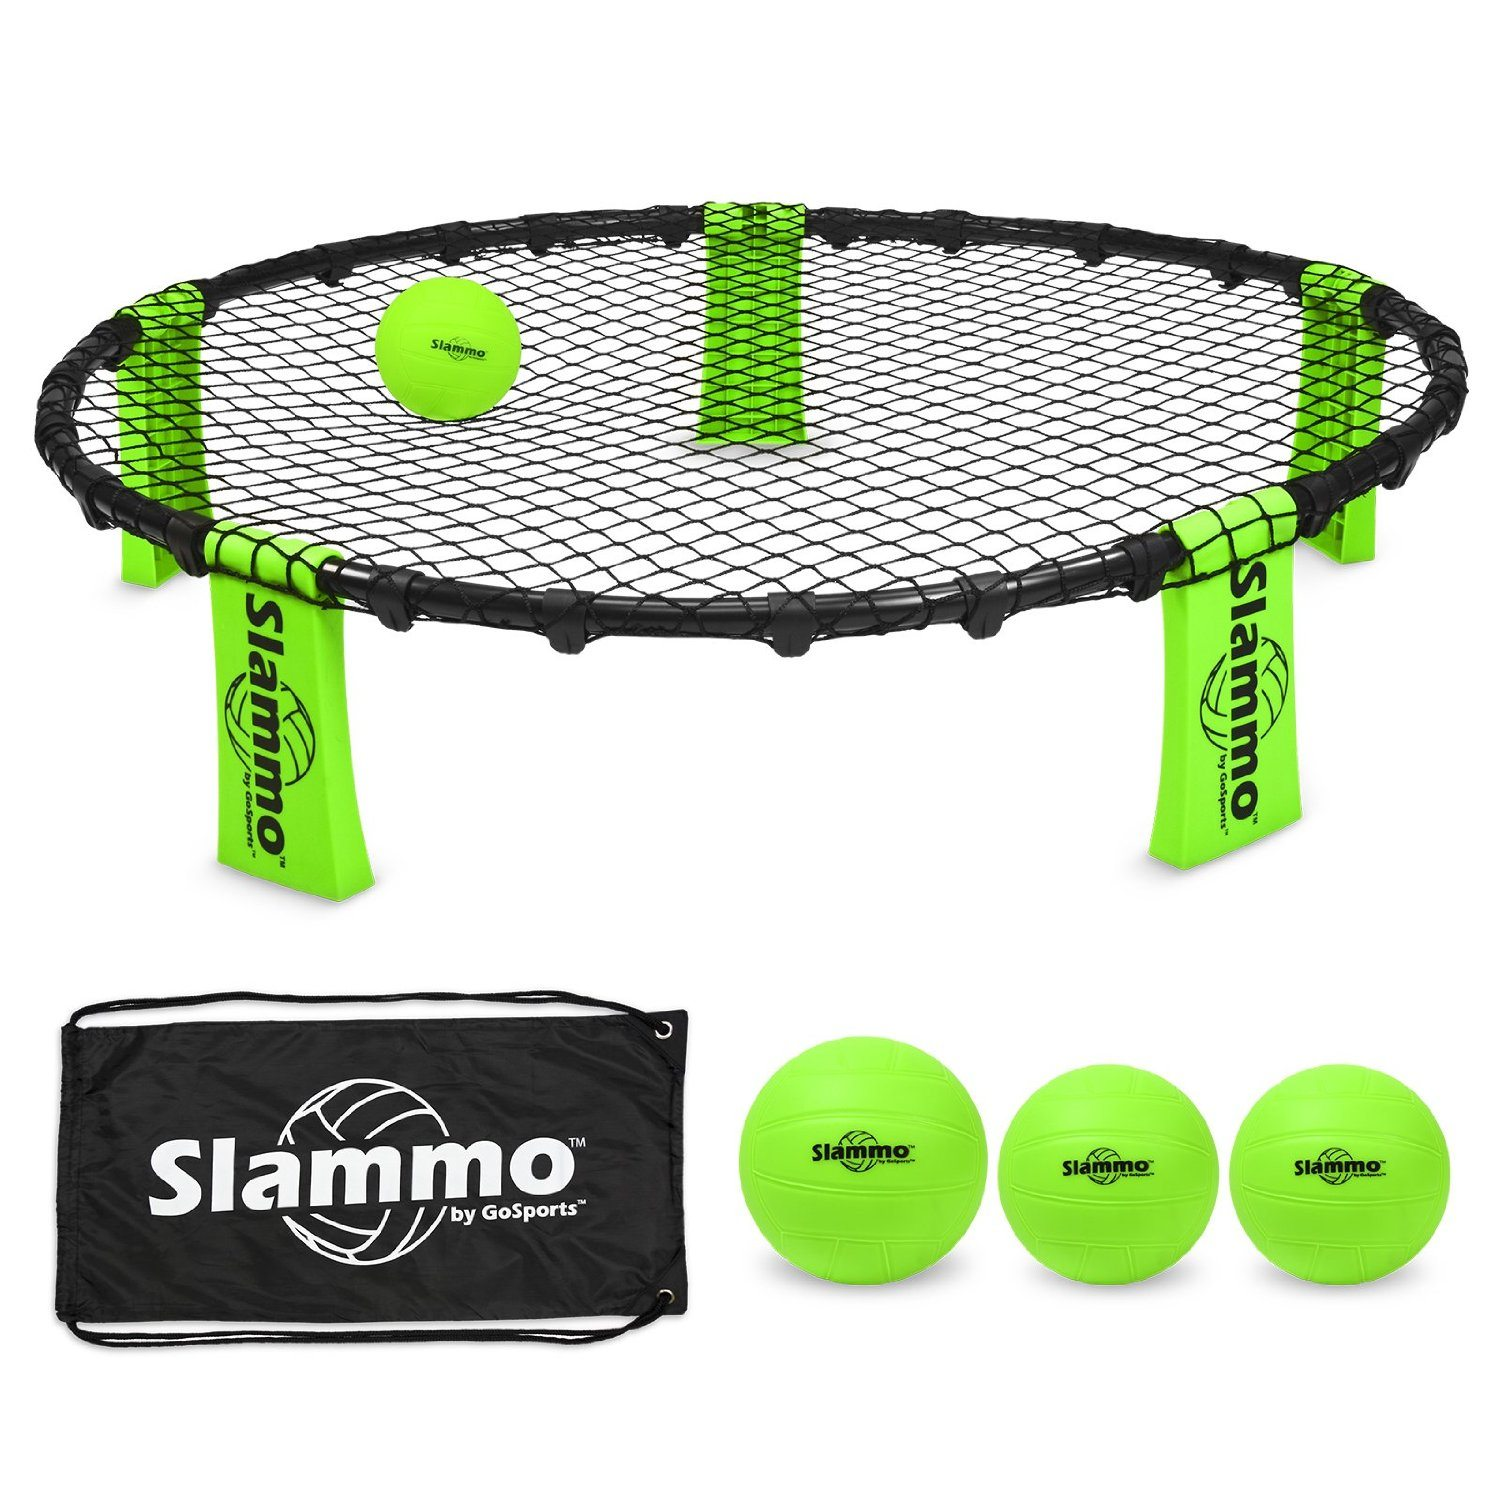 81pn8uYyXCL. SL1500  - GoSports Slammo Game Set (Includes 3 Balls, Carrying Case and Rules)